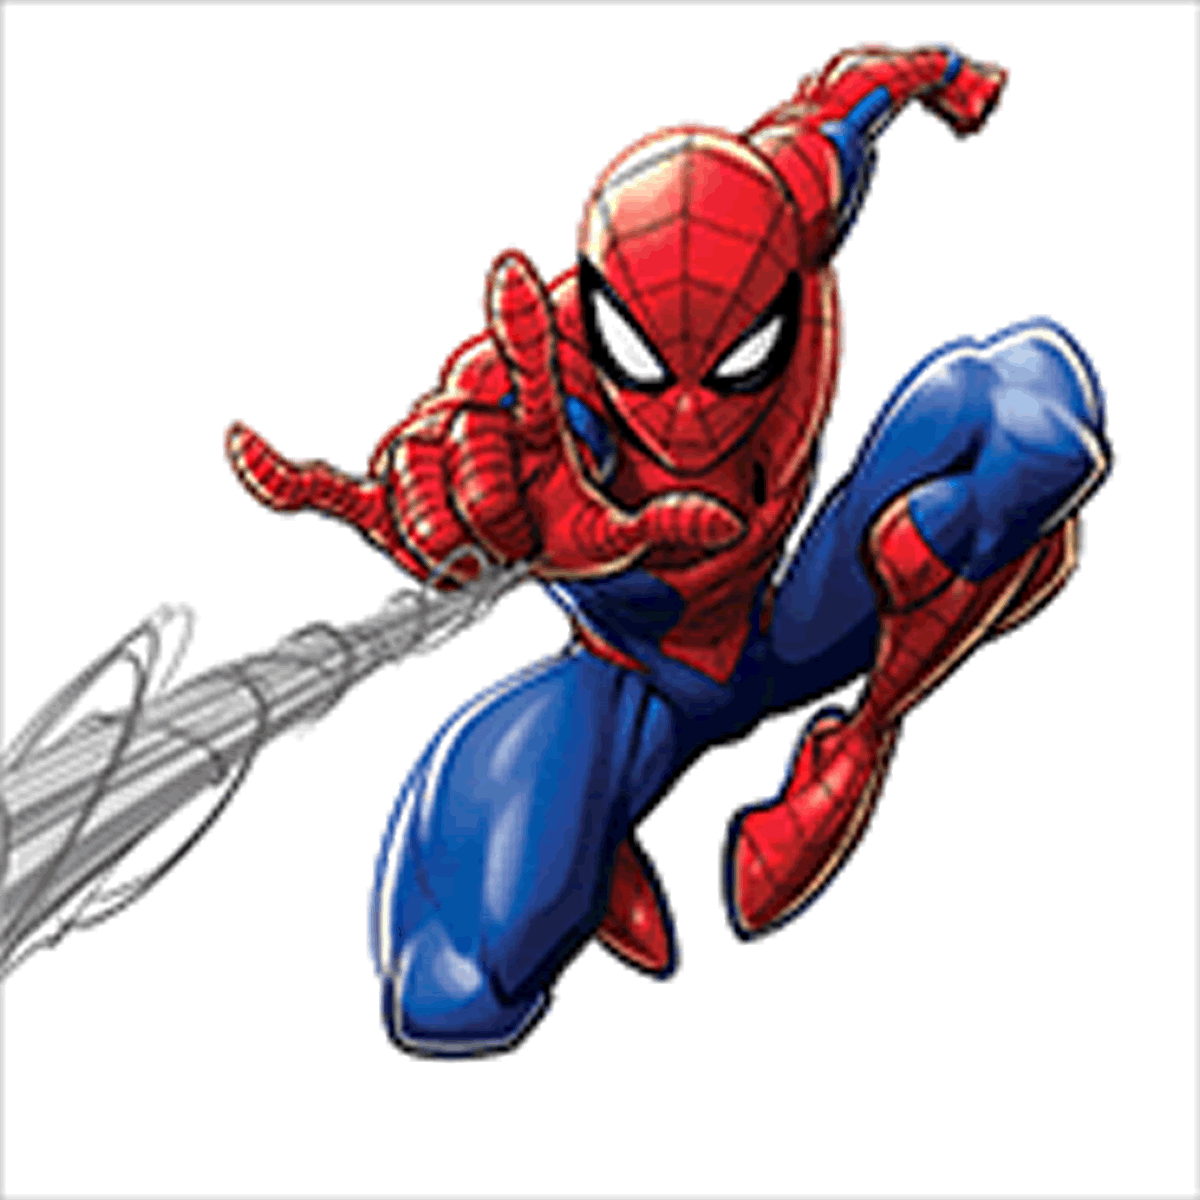 Marvel's Spider Man